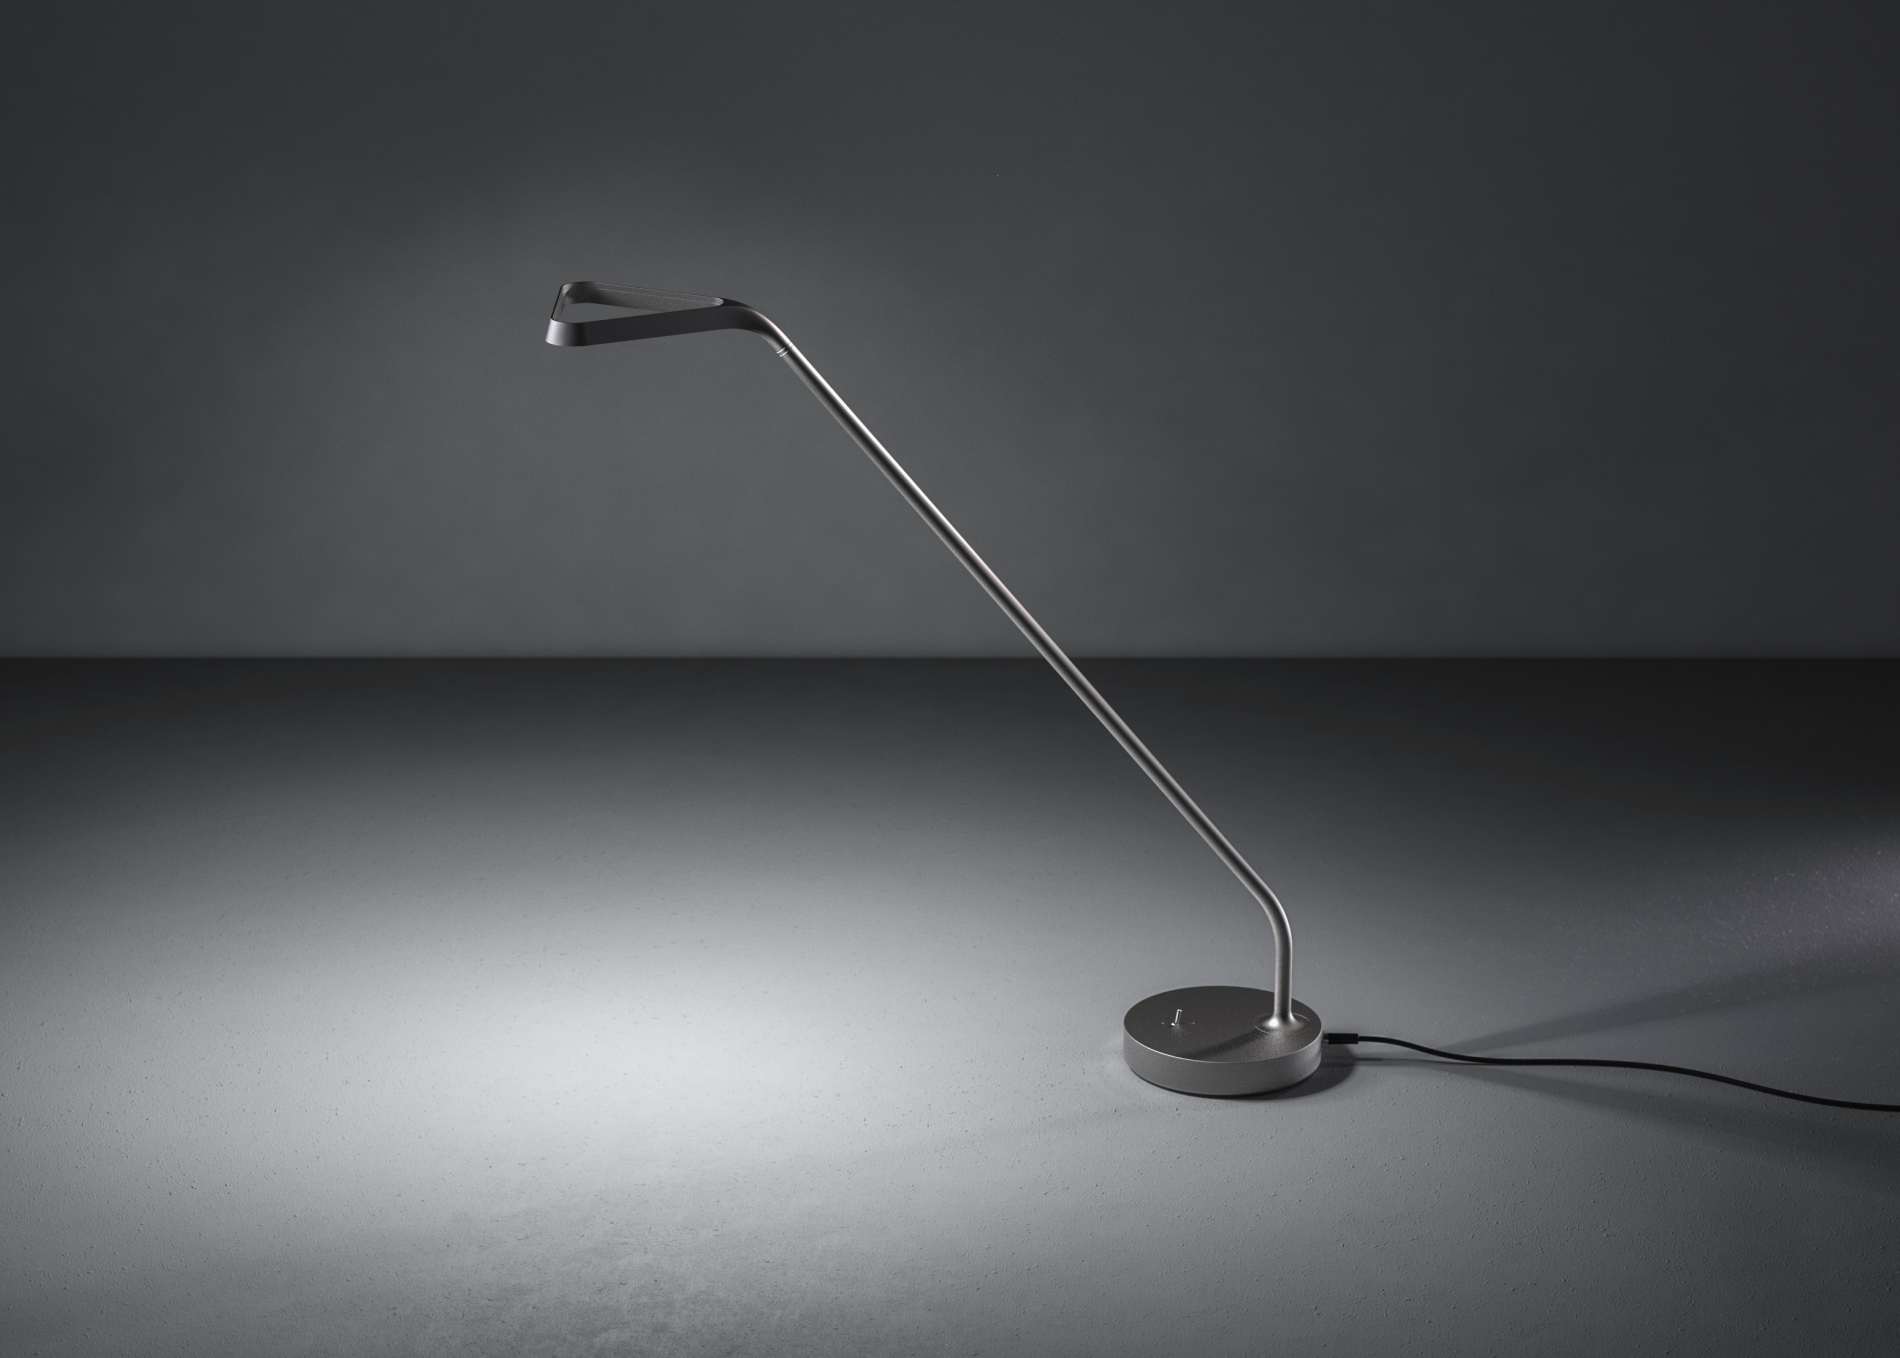 Lamp_2i5a.6324073_cropped